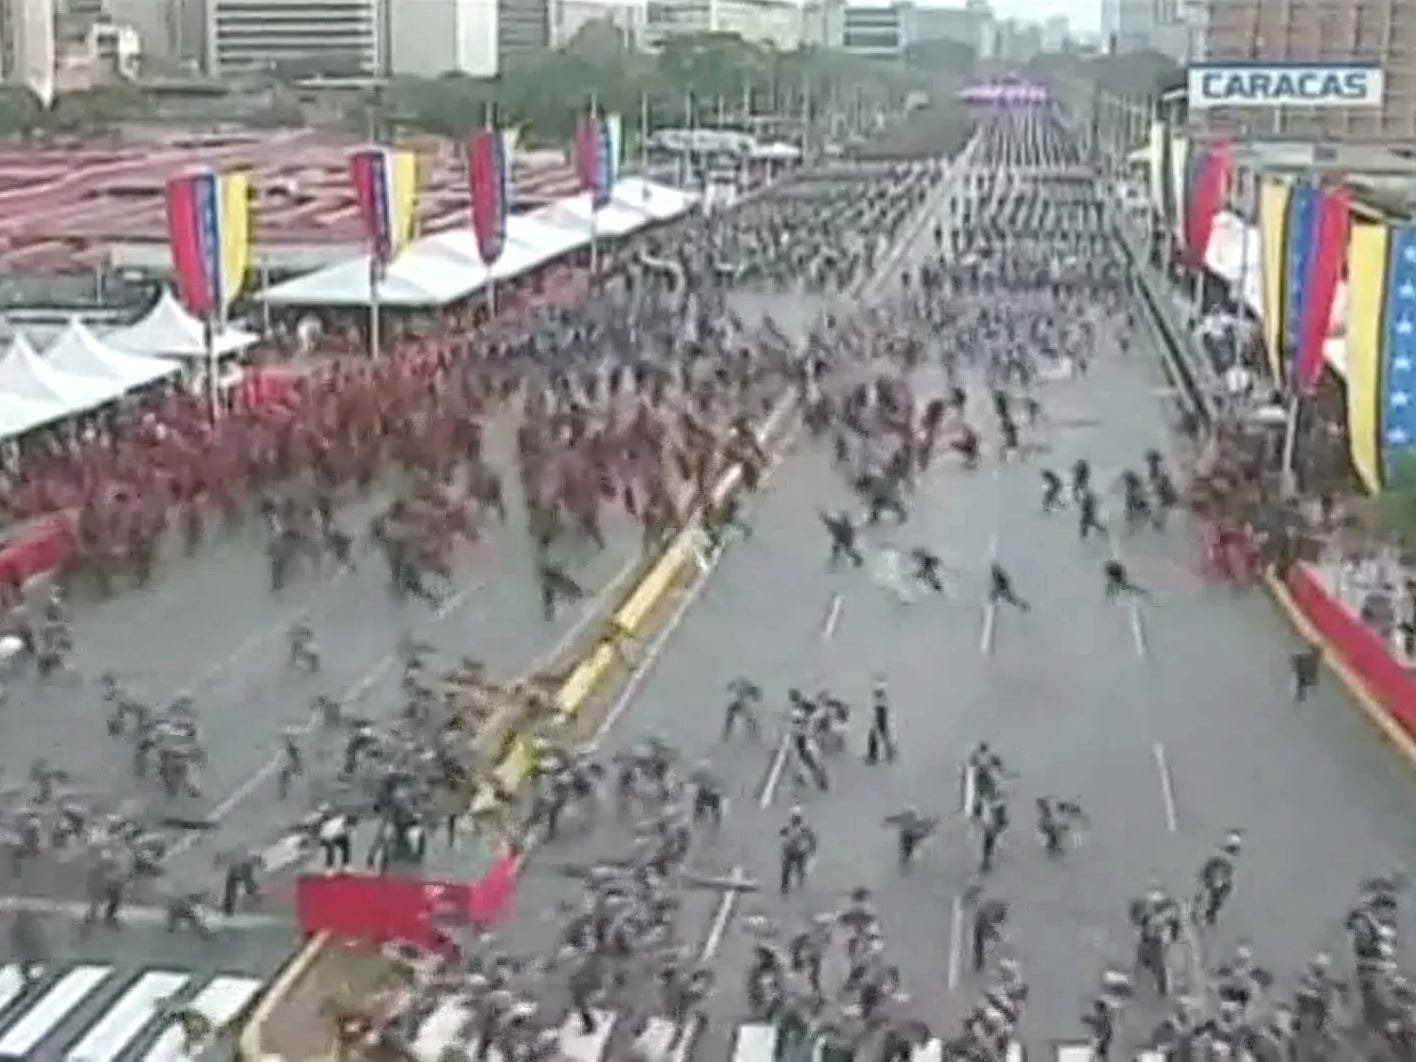 A handout screengrab taken from a video provided by Venezolana de Television (VTV), shows the moment in which a tv broadcast shows the military breaking ranks during the commemoration of the 81th anniversary of the creation of the Bolivarian National Guard (GNB), in Caracas, Venezuela on August 4, 2018. The hundreds of soldiers participating in the event ran after an evacuation warning after the detonation of 'drone-type flying devices that contained an explosive charge'. The Venezuelan President Nicolas Maduro was allegedly the intended target of the attack. During a speech after the attack, Maduro claimed that the Colombian President Juan Manuel Santos, and far-right elements in Venezuela had attempted to assassinate him using a pair of drones flying over the military ceremony. The resulting explosion injured seven people.